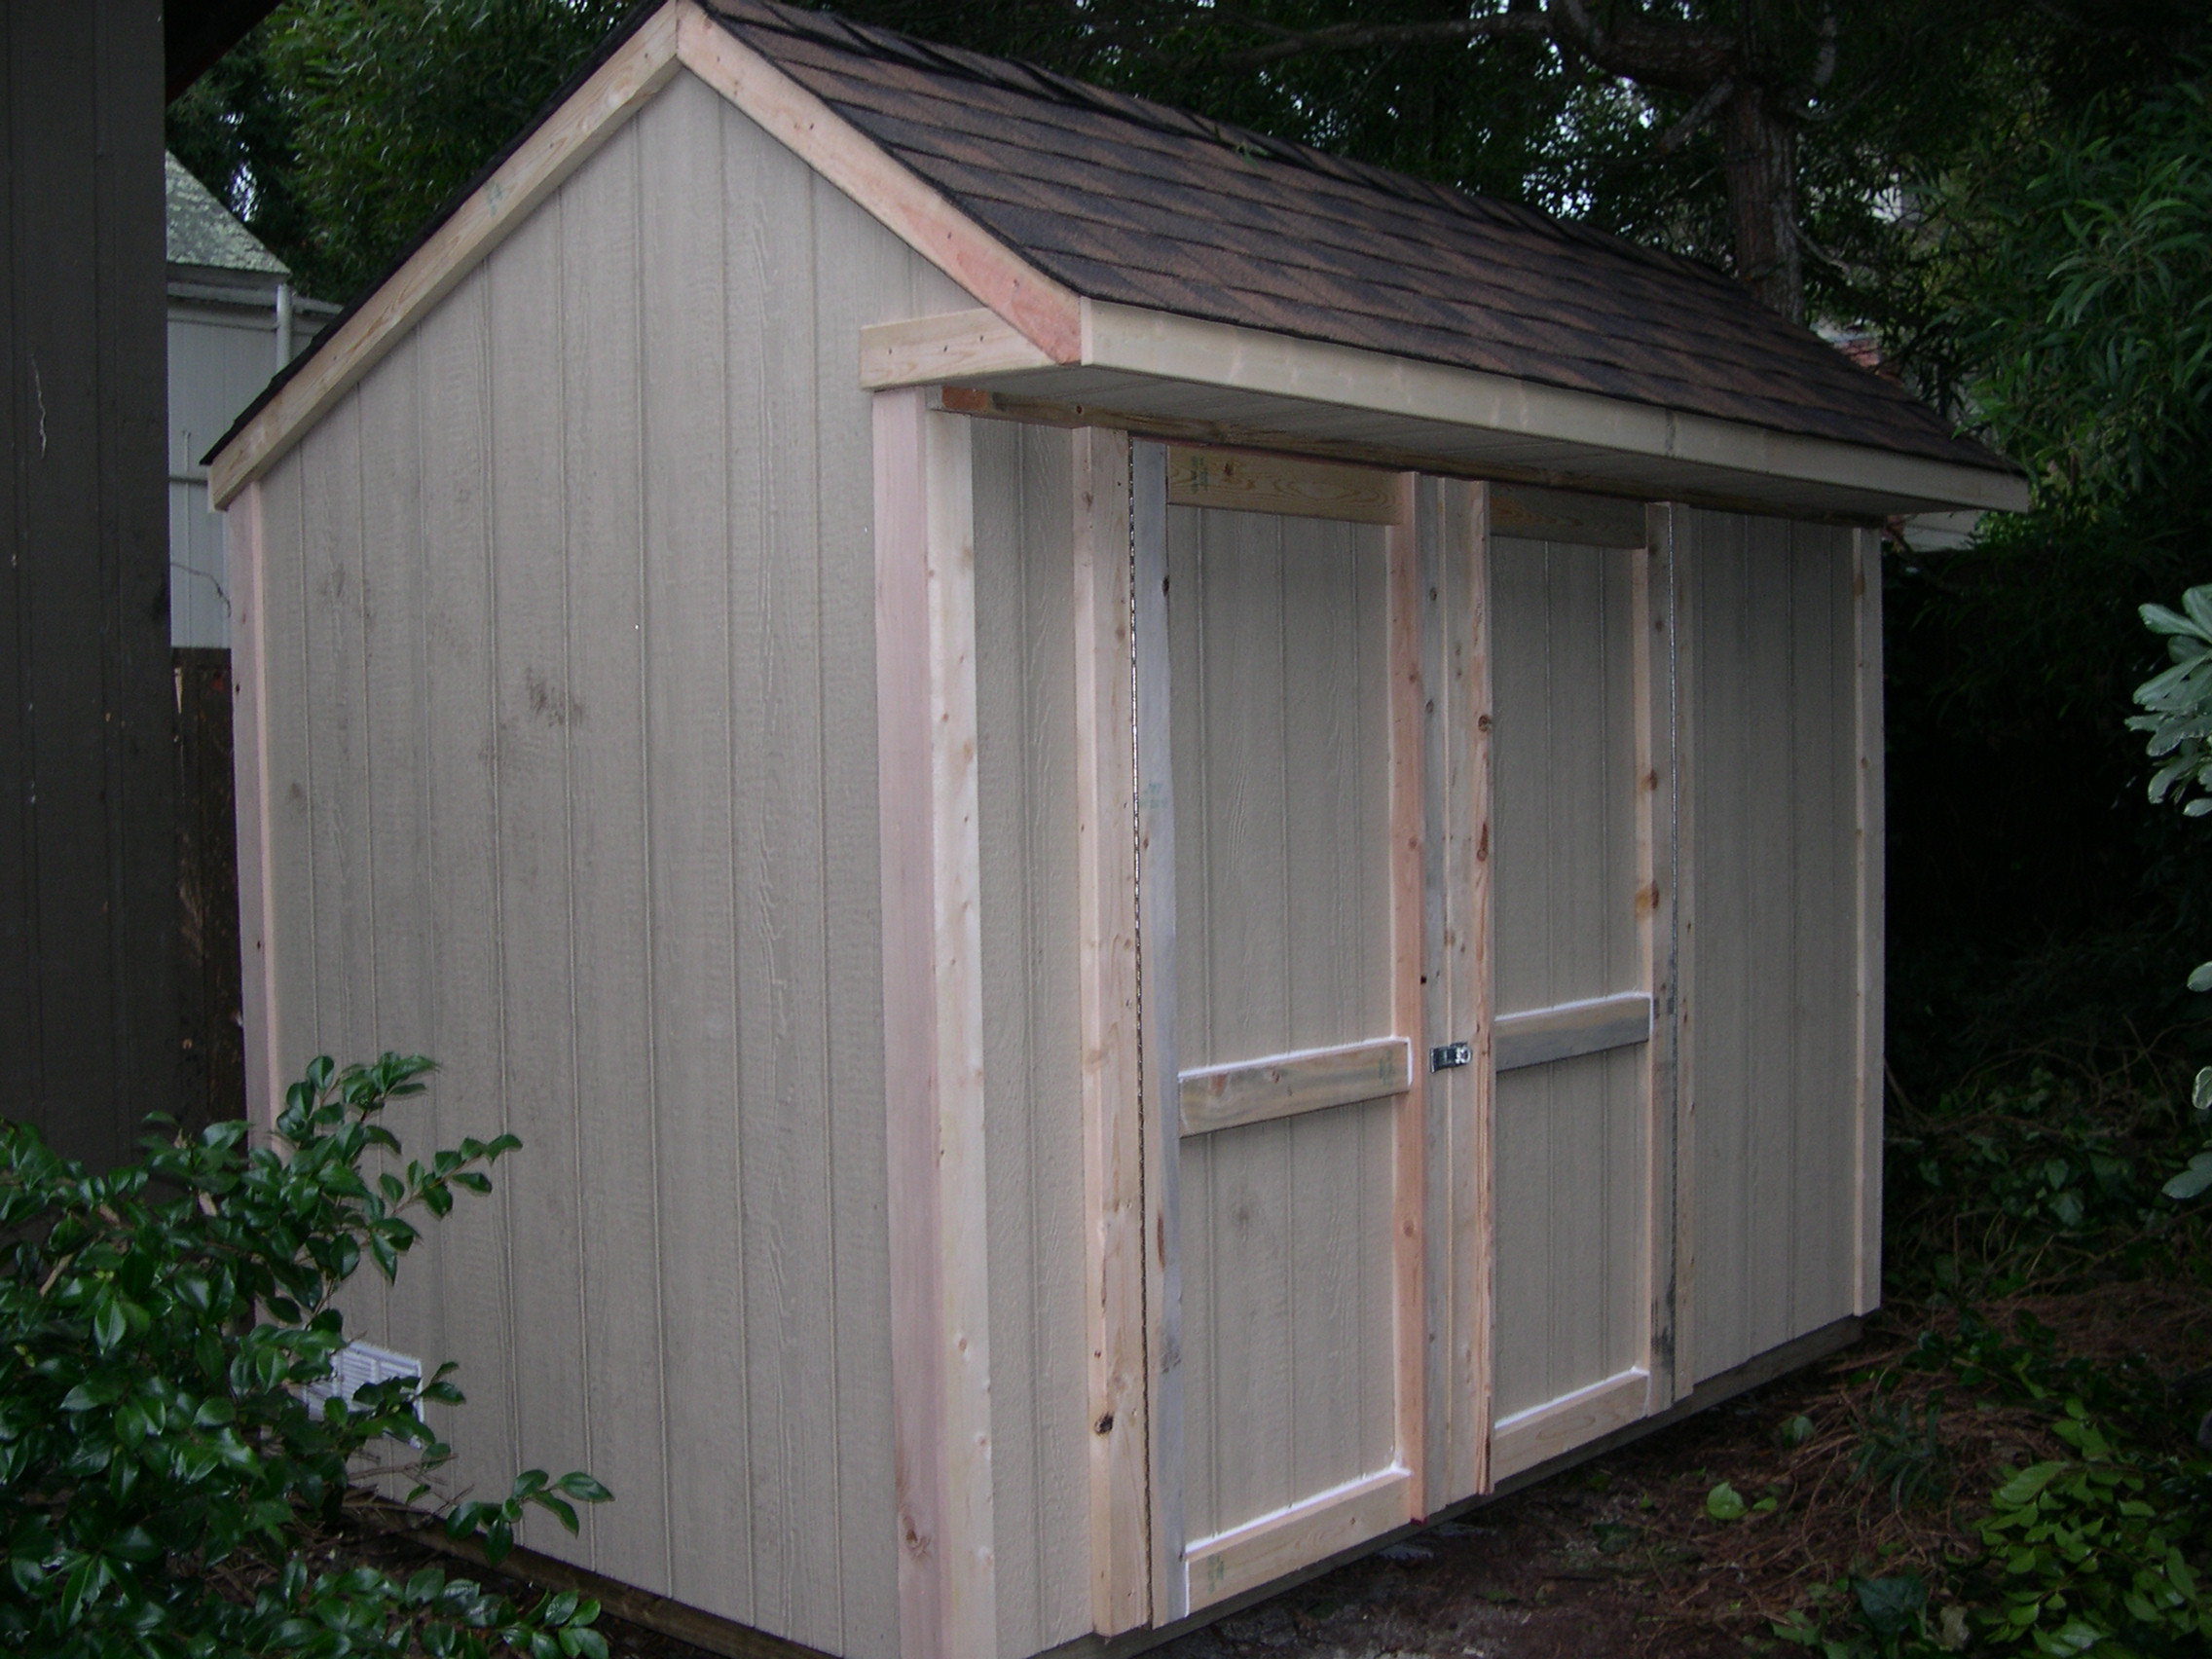 Permalink to how to make a simple garden shed